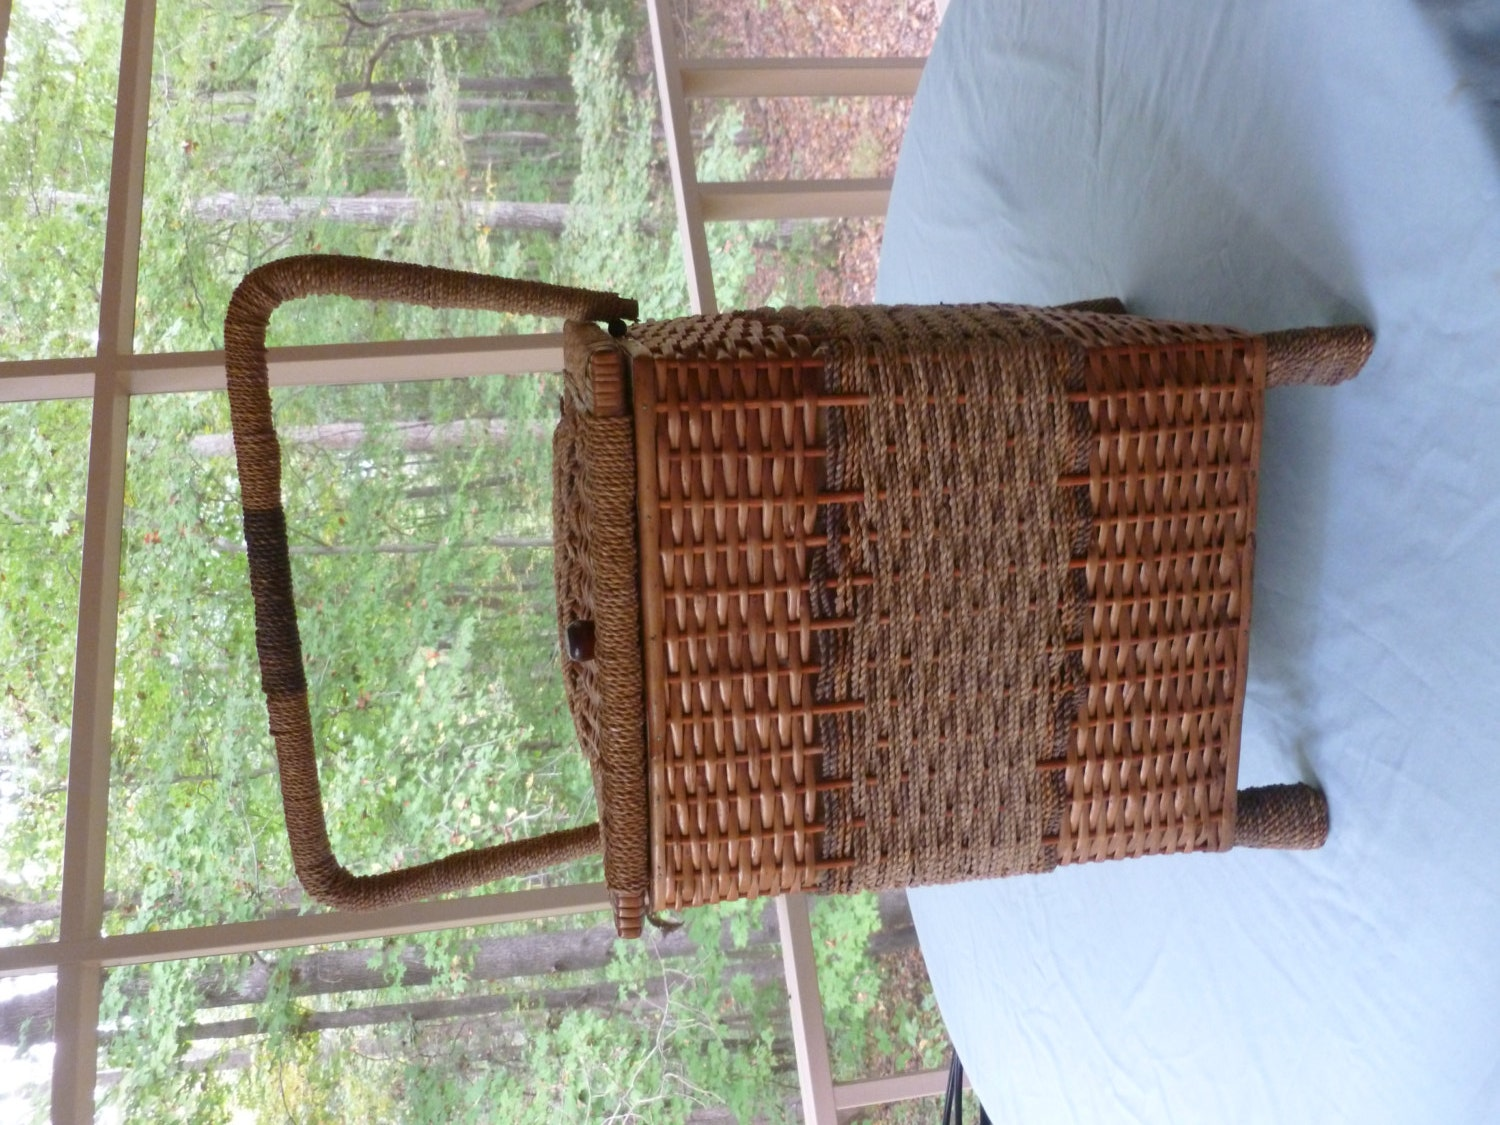 Wicker Basket With Sections : Wicker and rope basket weave section sewing box on by